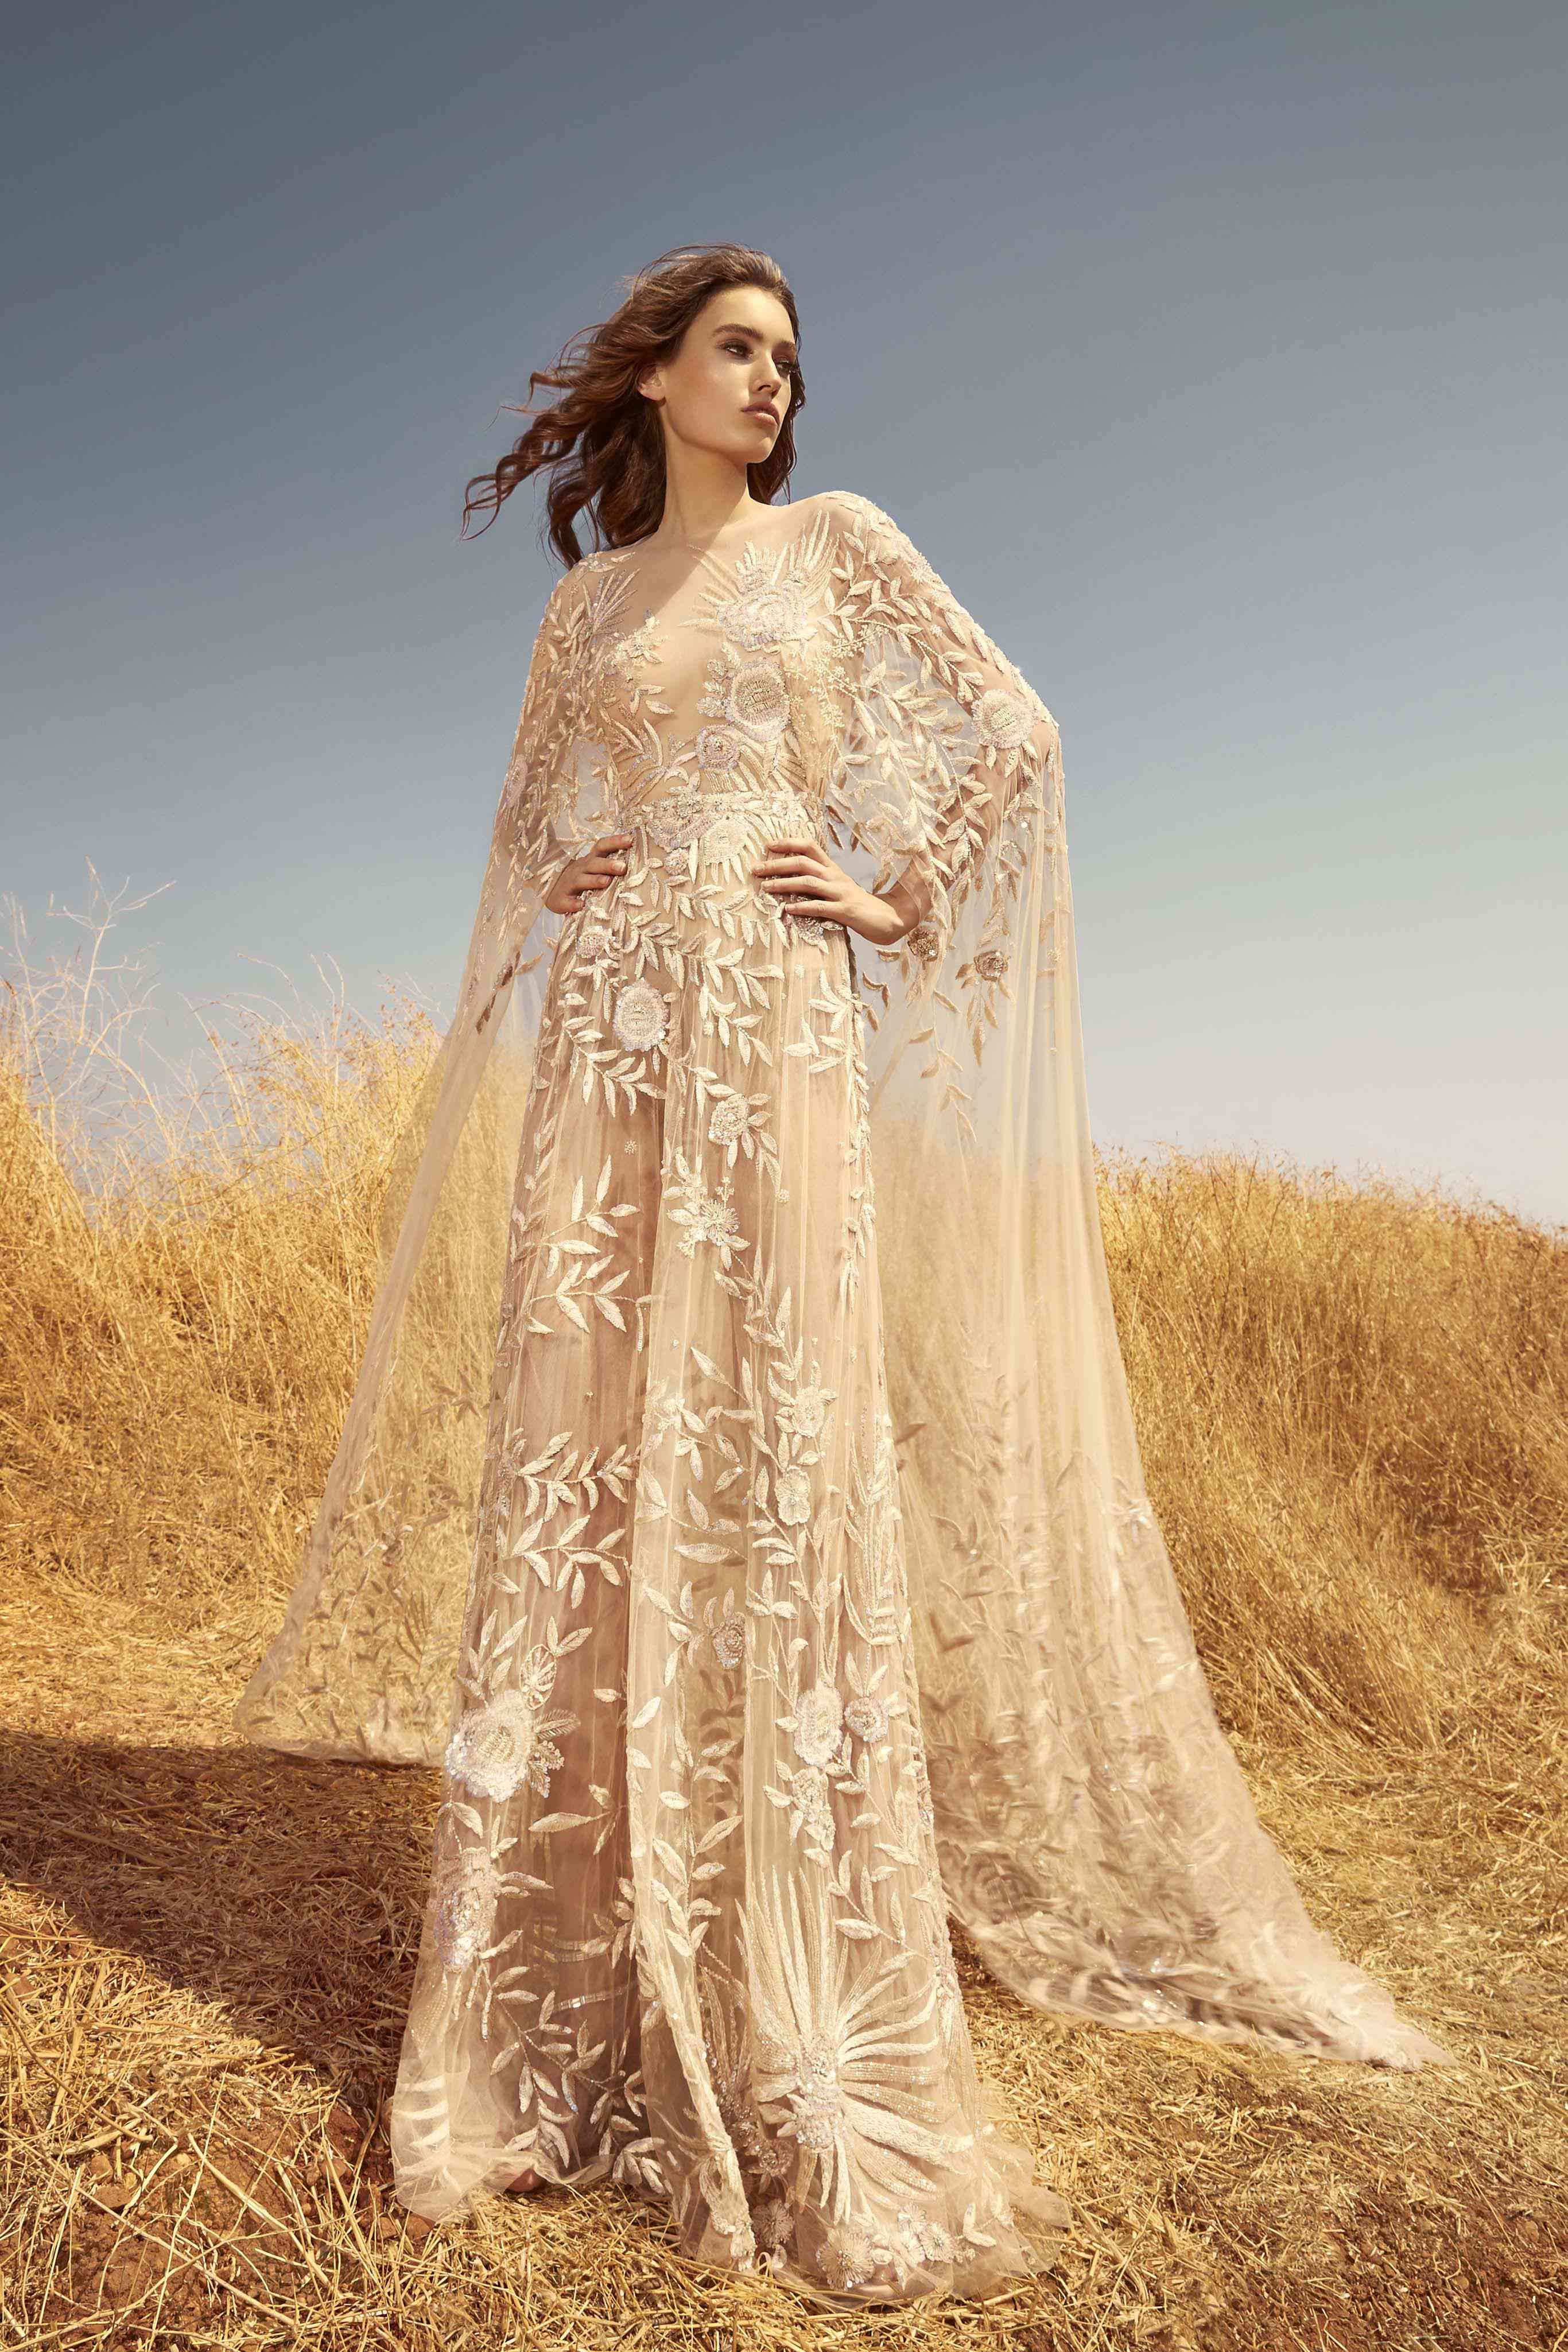 Model in an A-line fully embroidered tulle gown with an attached cape